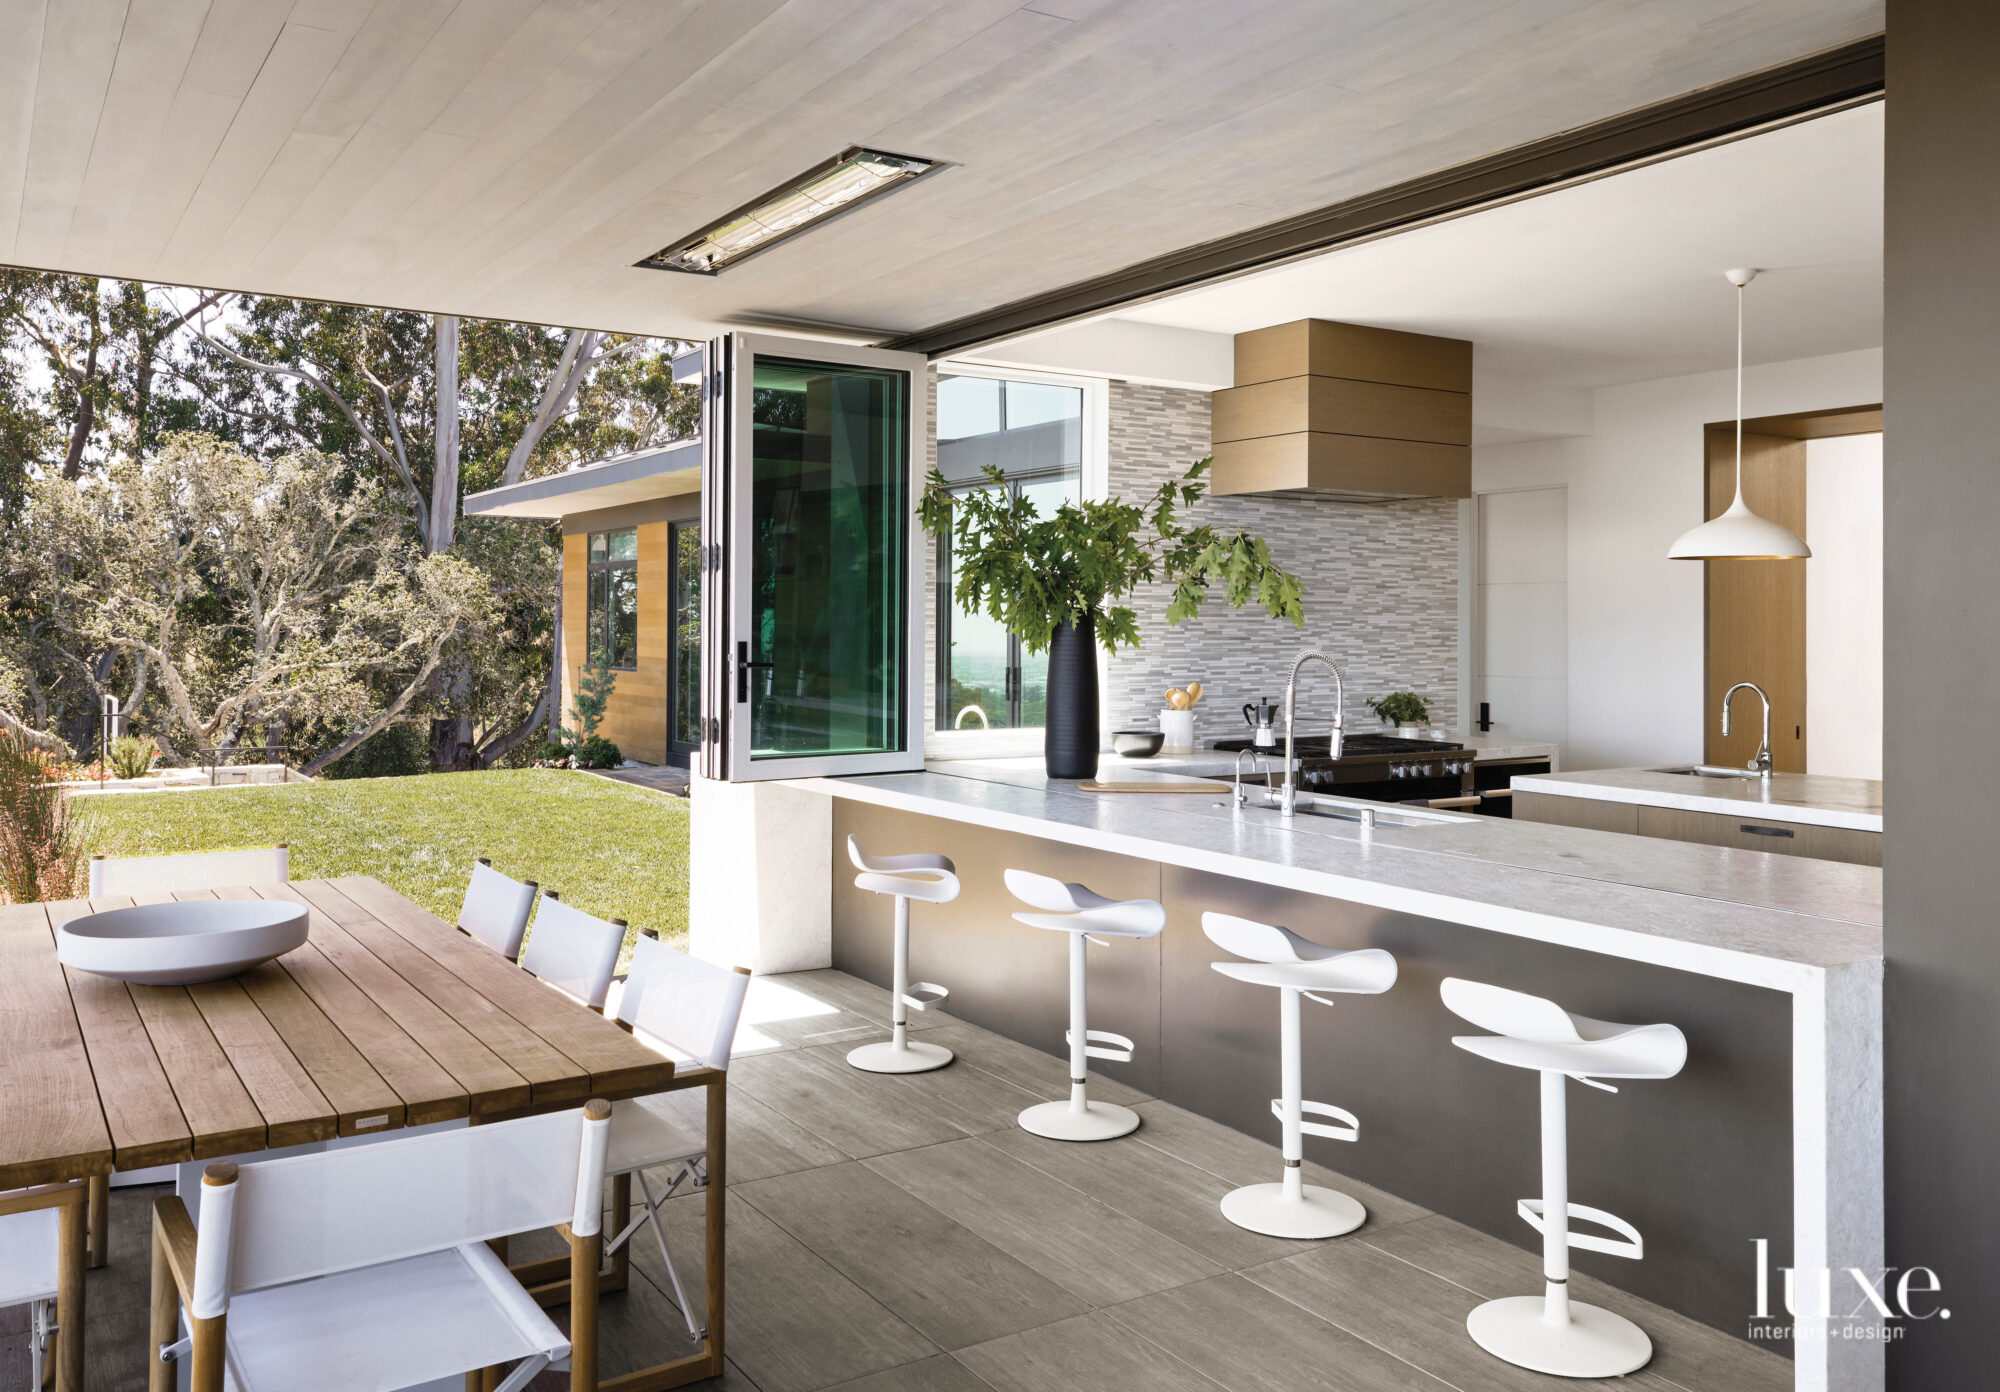 A large accordion window opens the kitchen to an outdoor dining room.